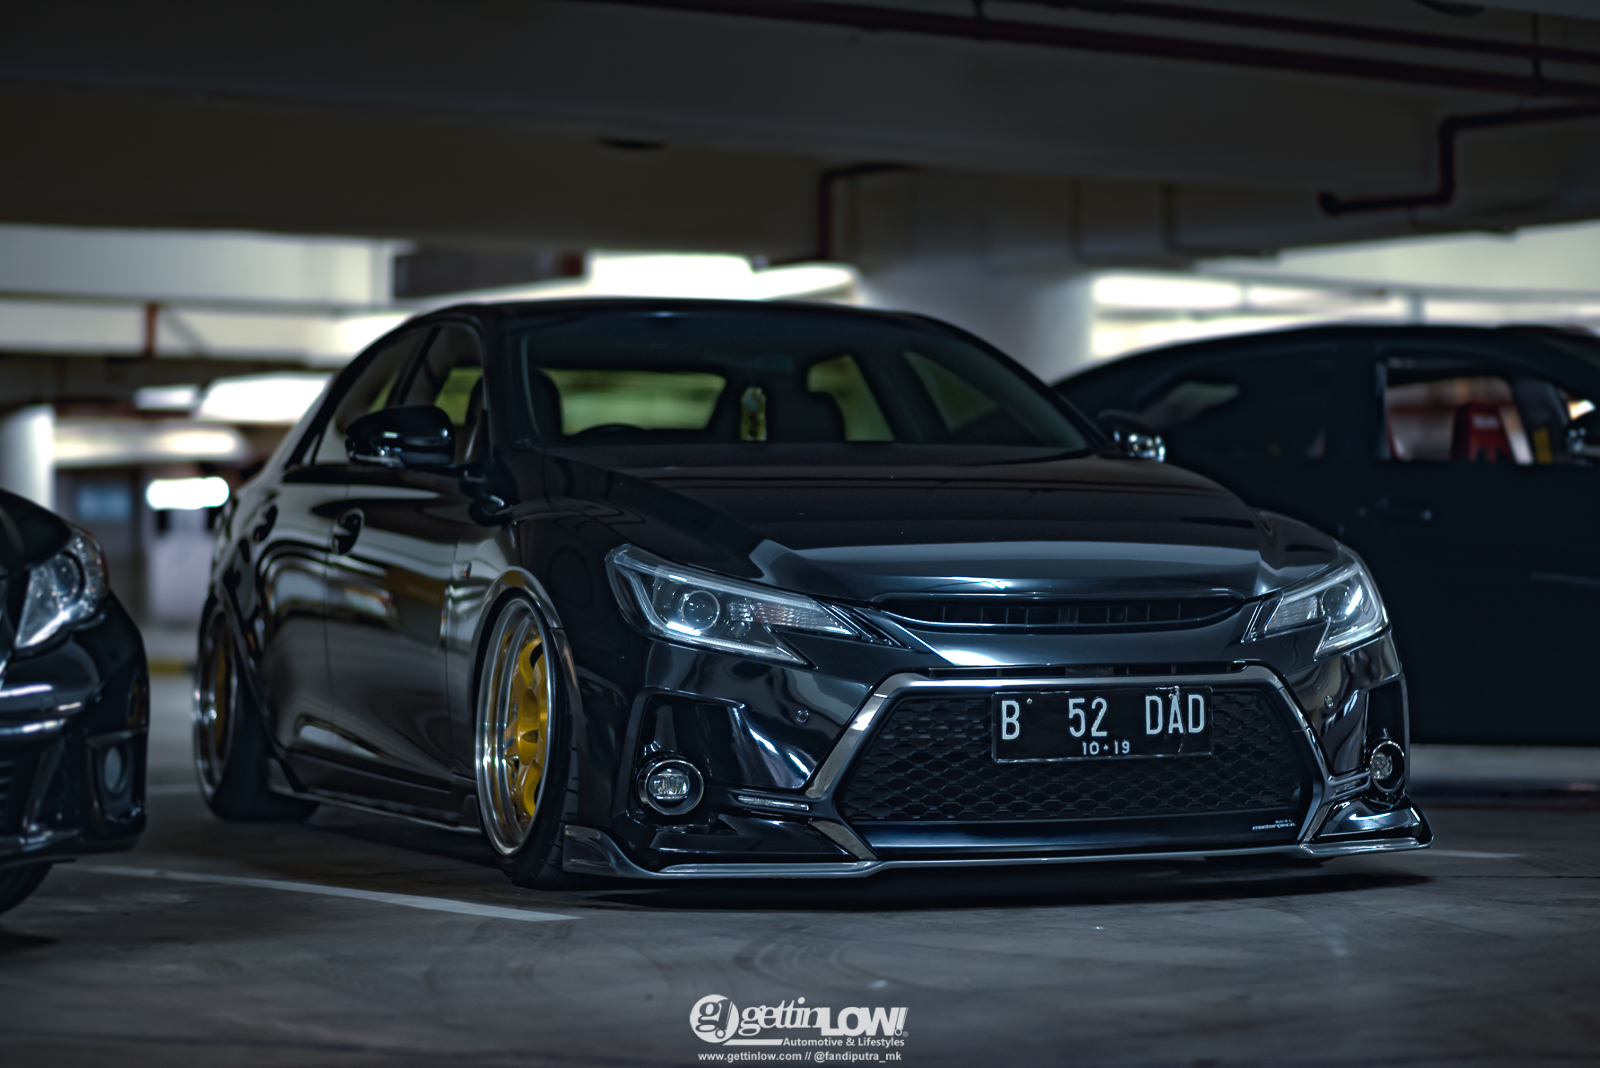 LOWFITMENTDAY-1_-23